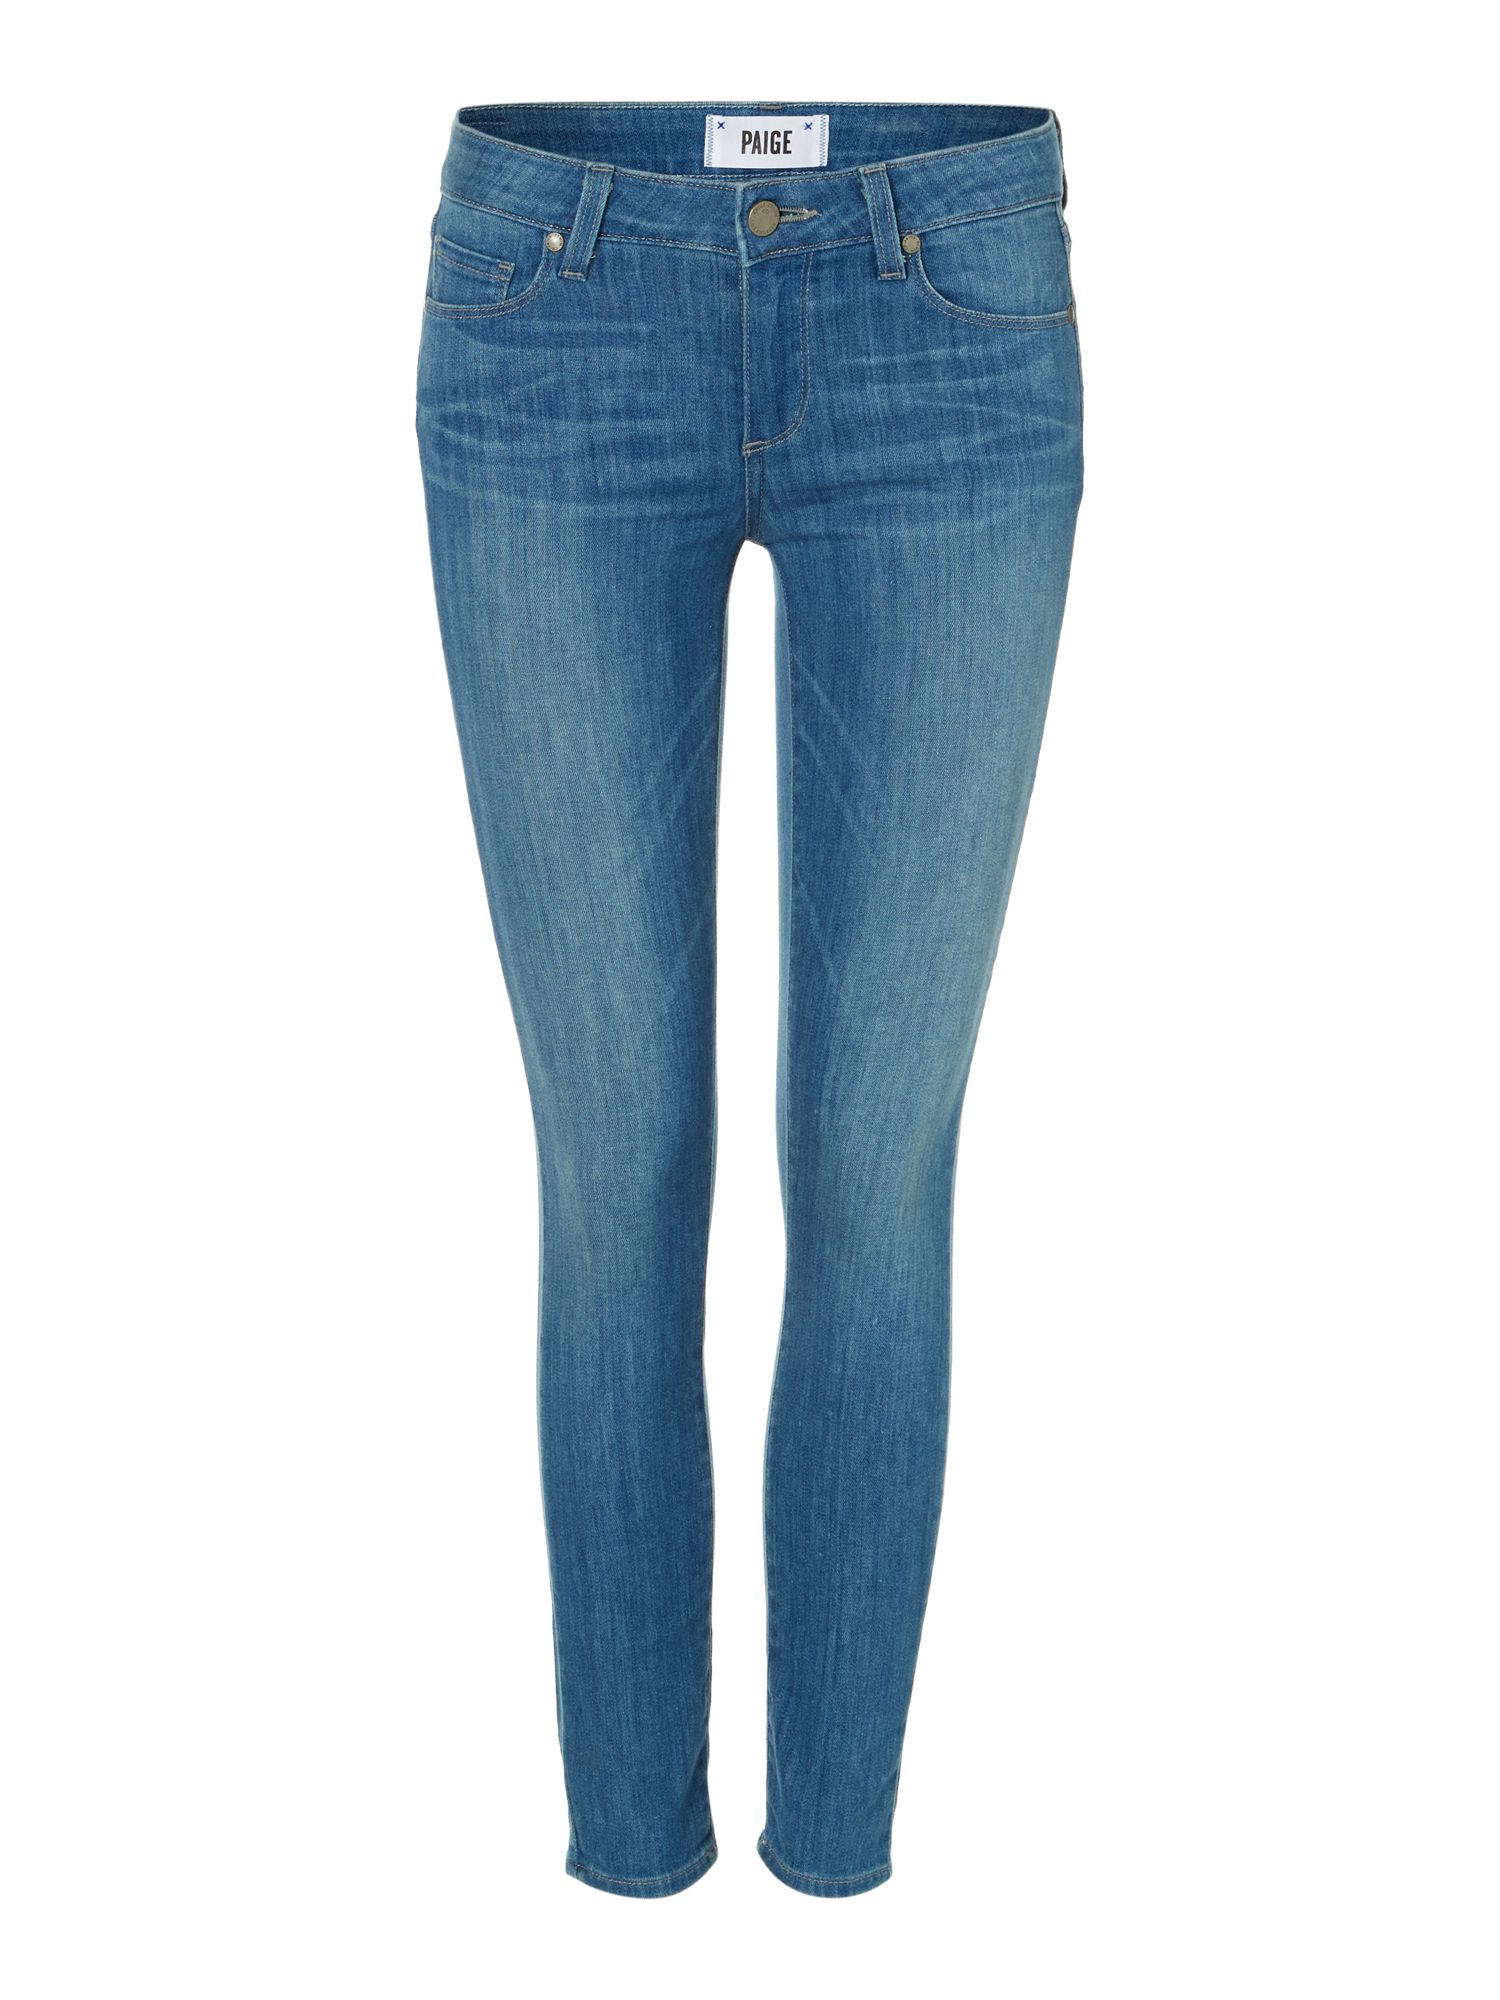 Verdugo Skinny ankle jeans in lovelight